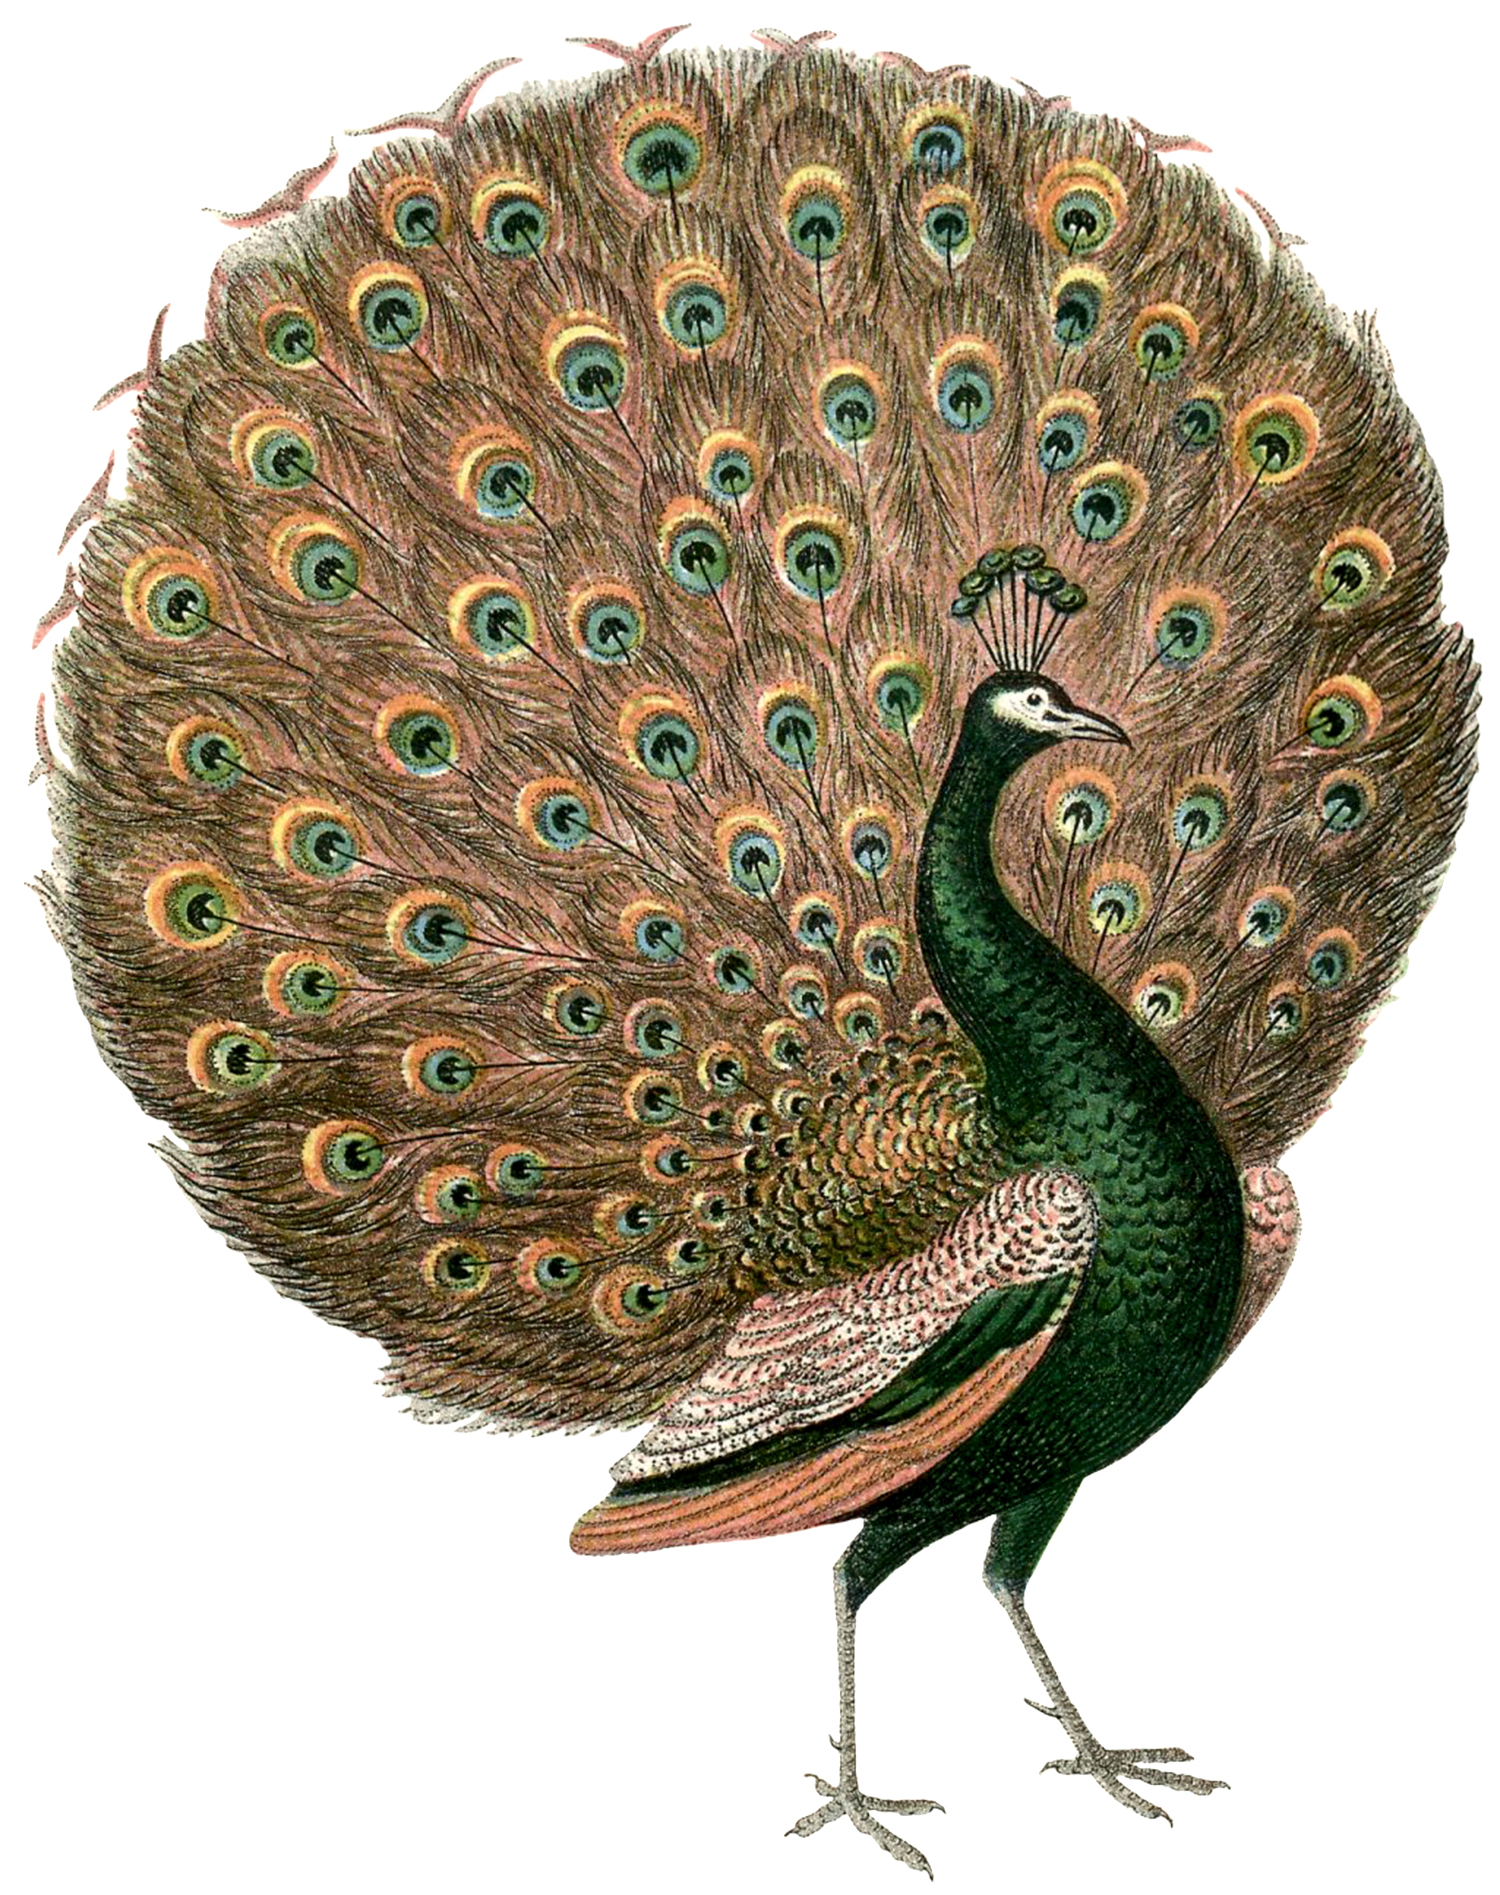 Gorgeous Vintage Peacock Images